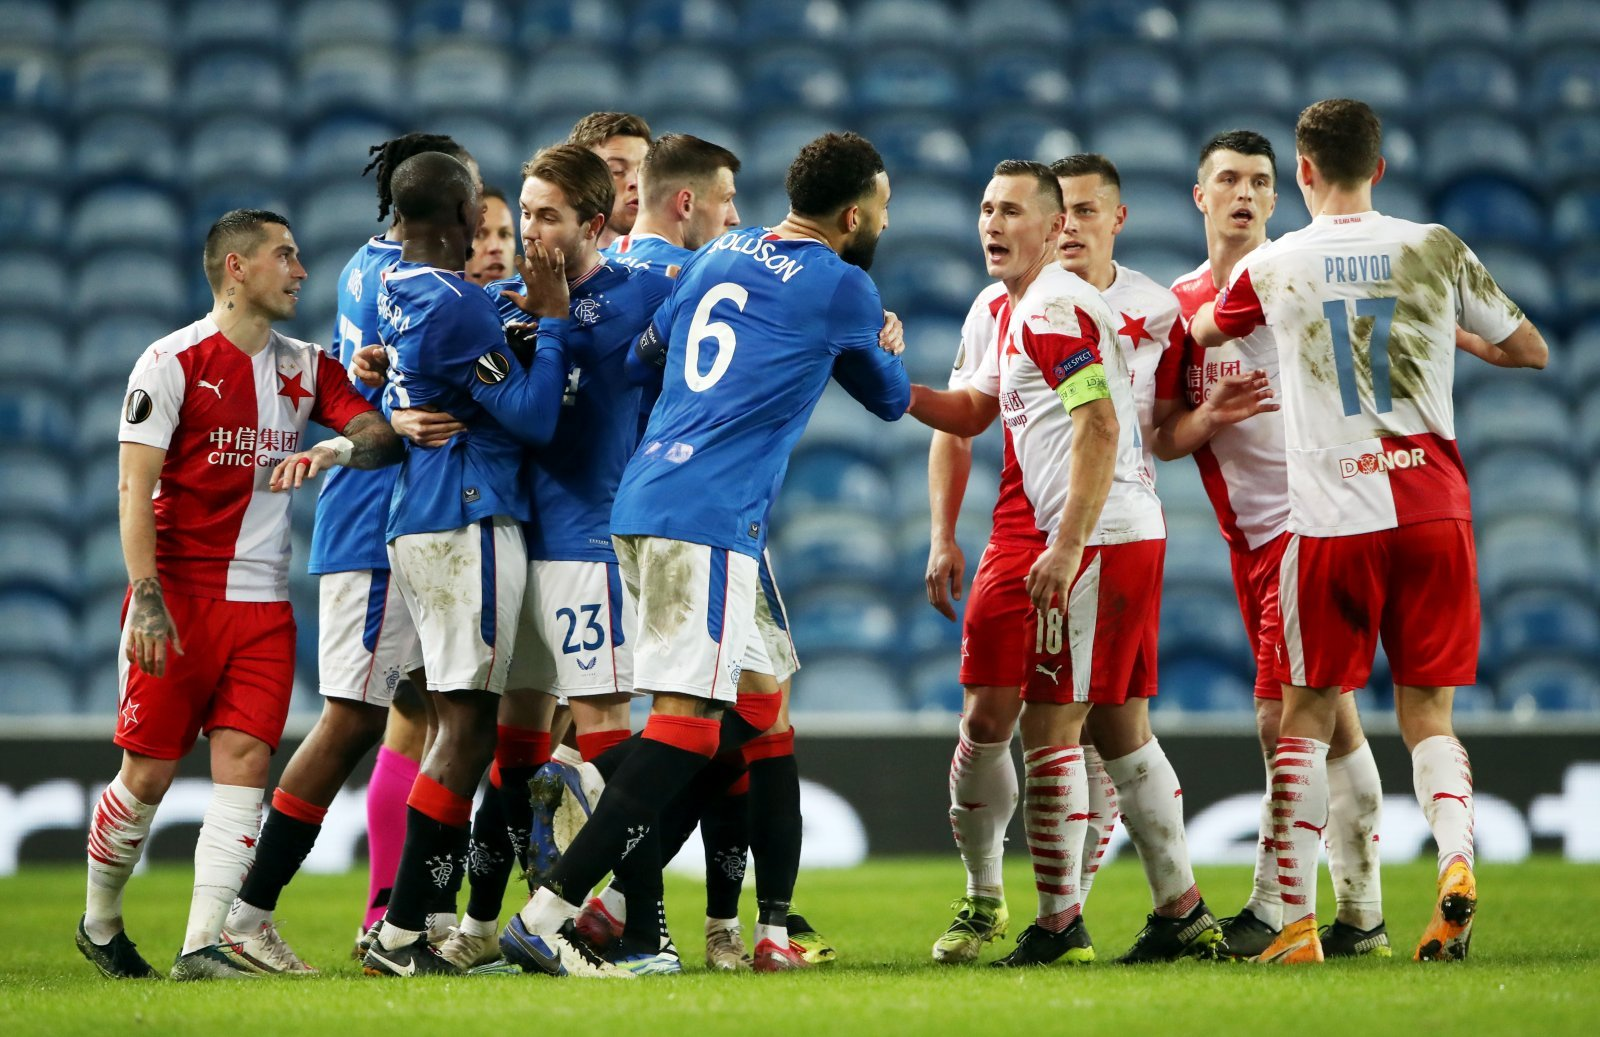 Slavia release statement after Gers match | The Transfer Tavern